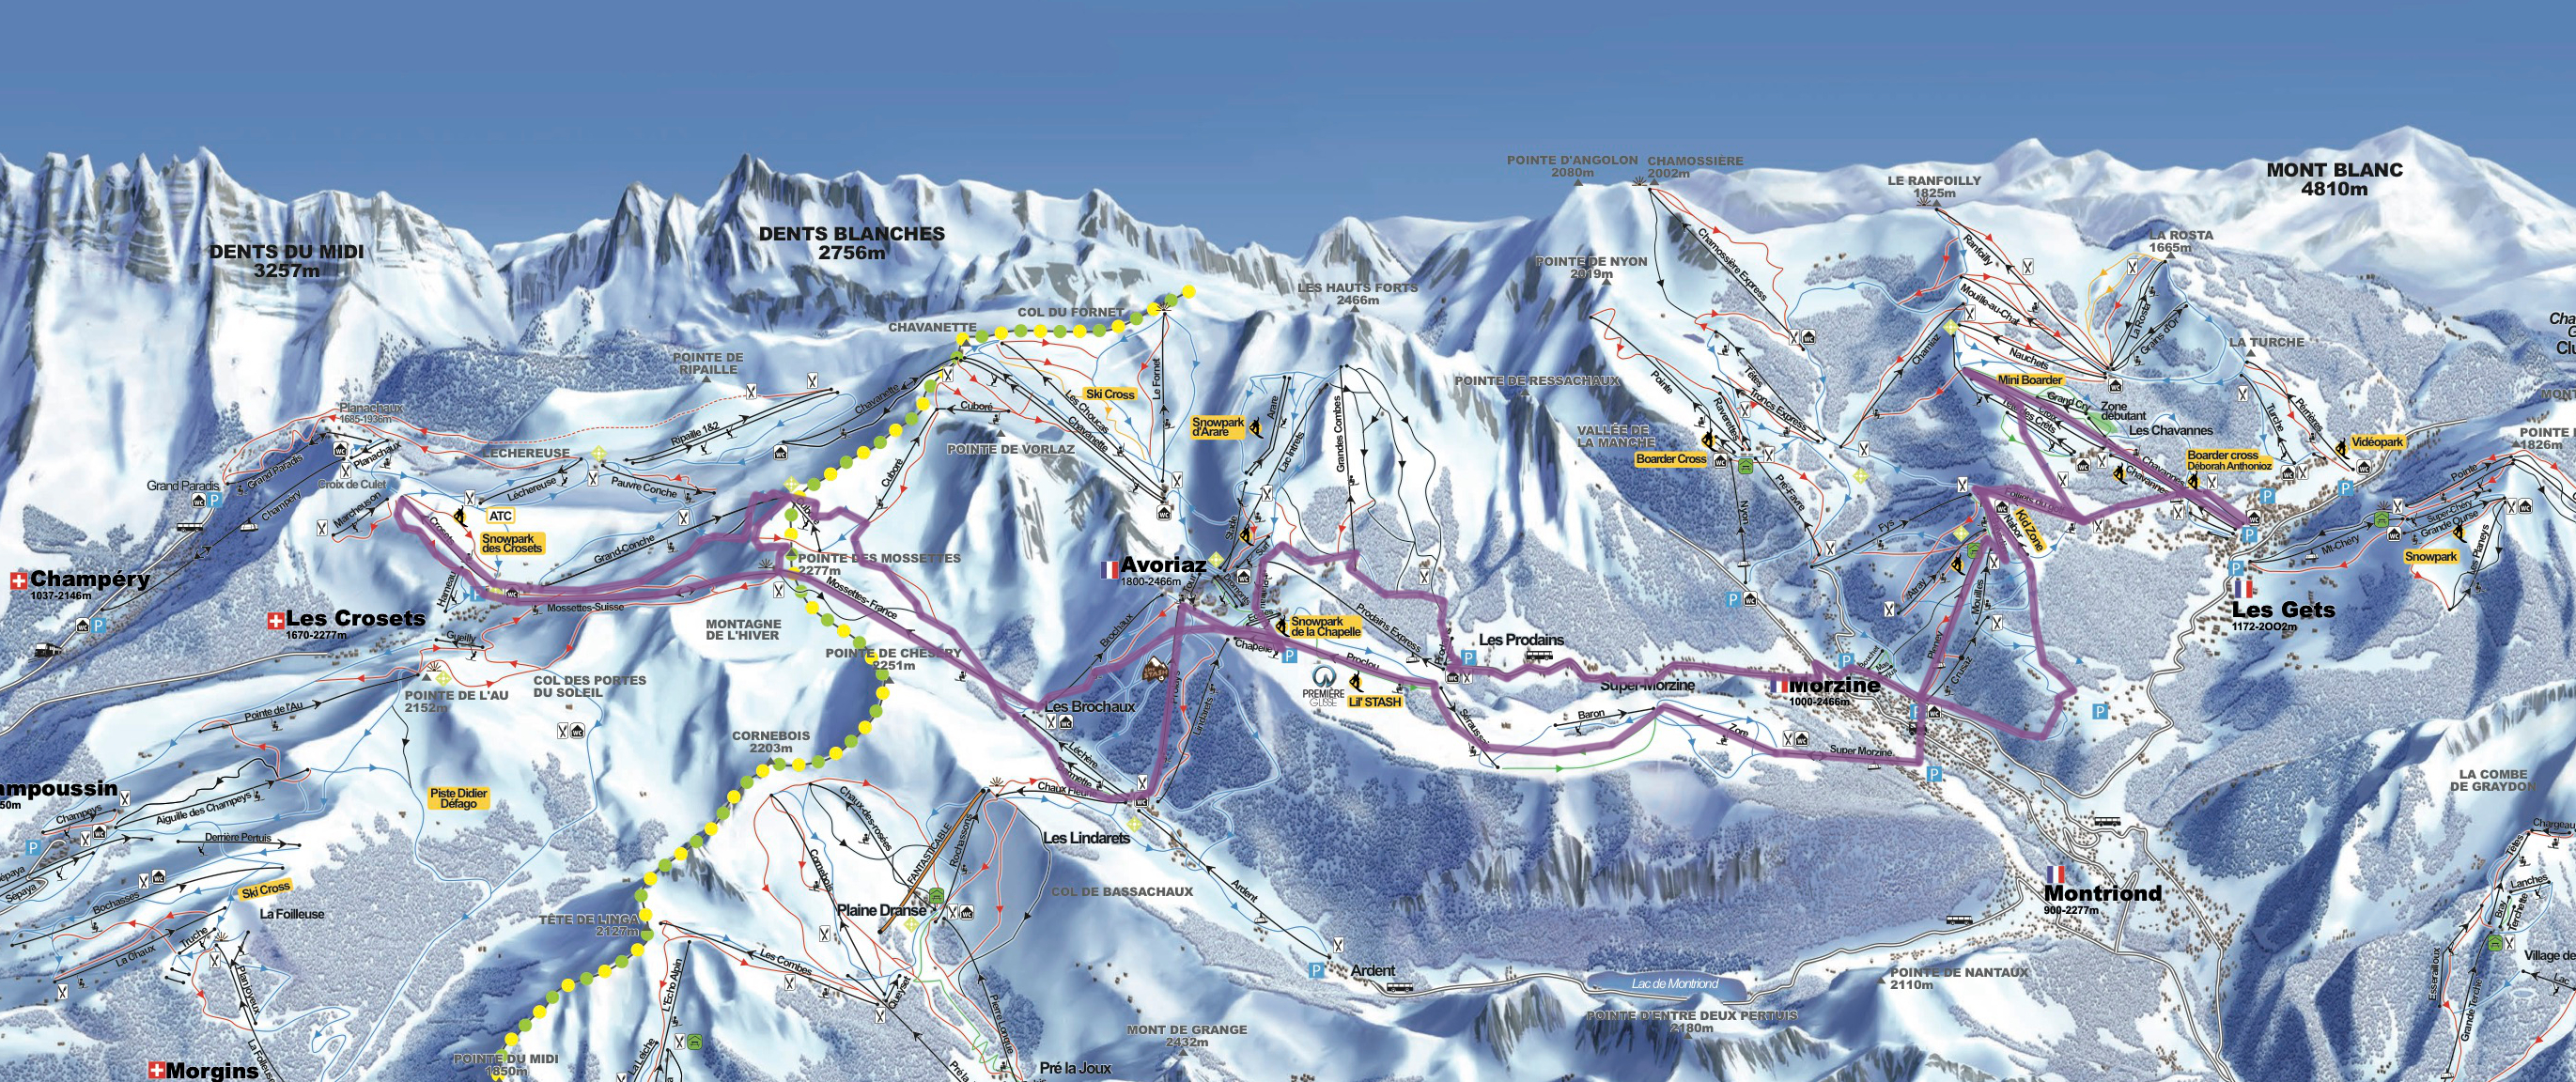 Our route on our family Swiss ski tour